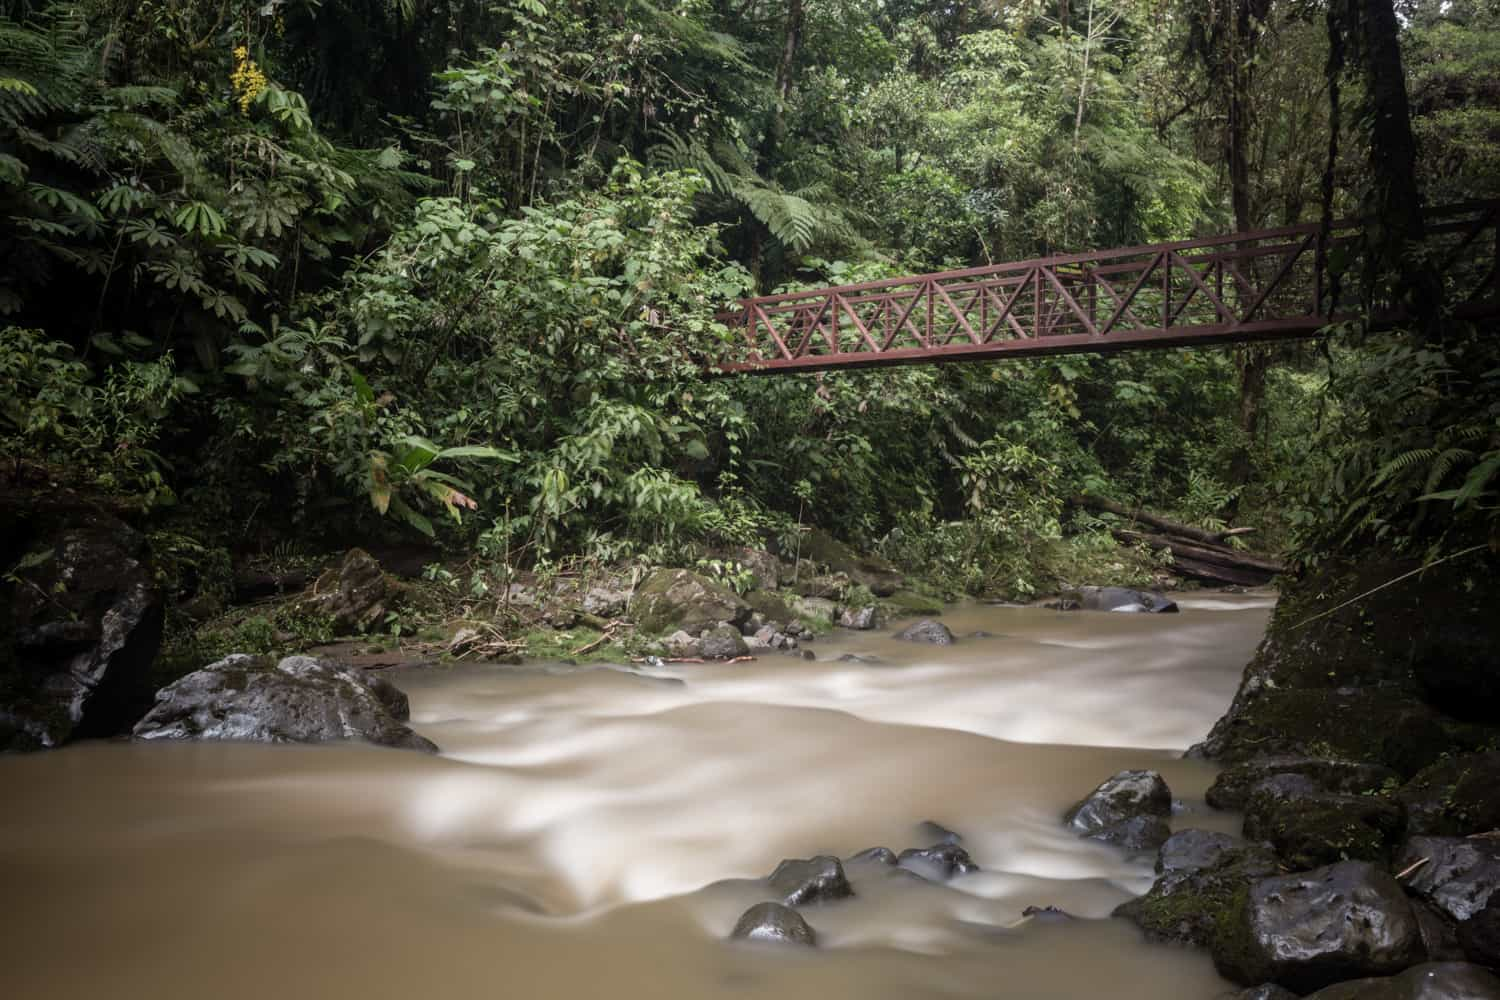 Long exposure photo of river flowing under bride ideal for post wedding ceremony photos.